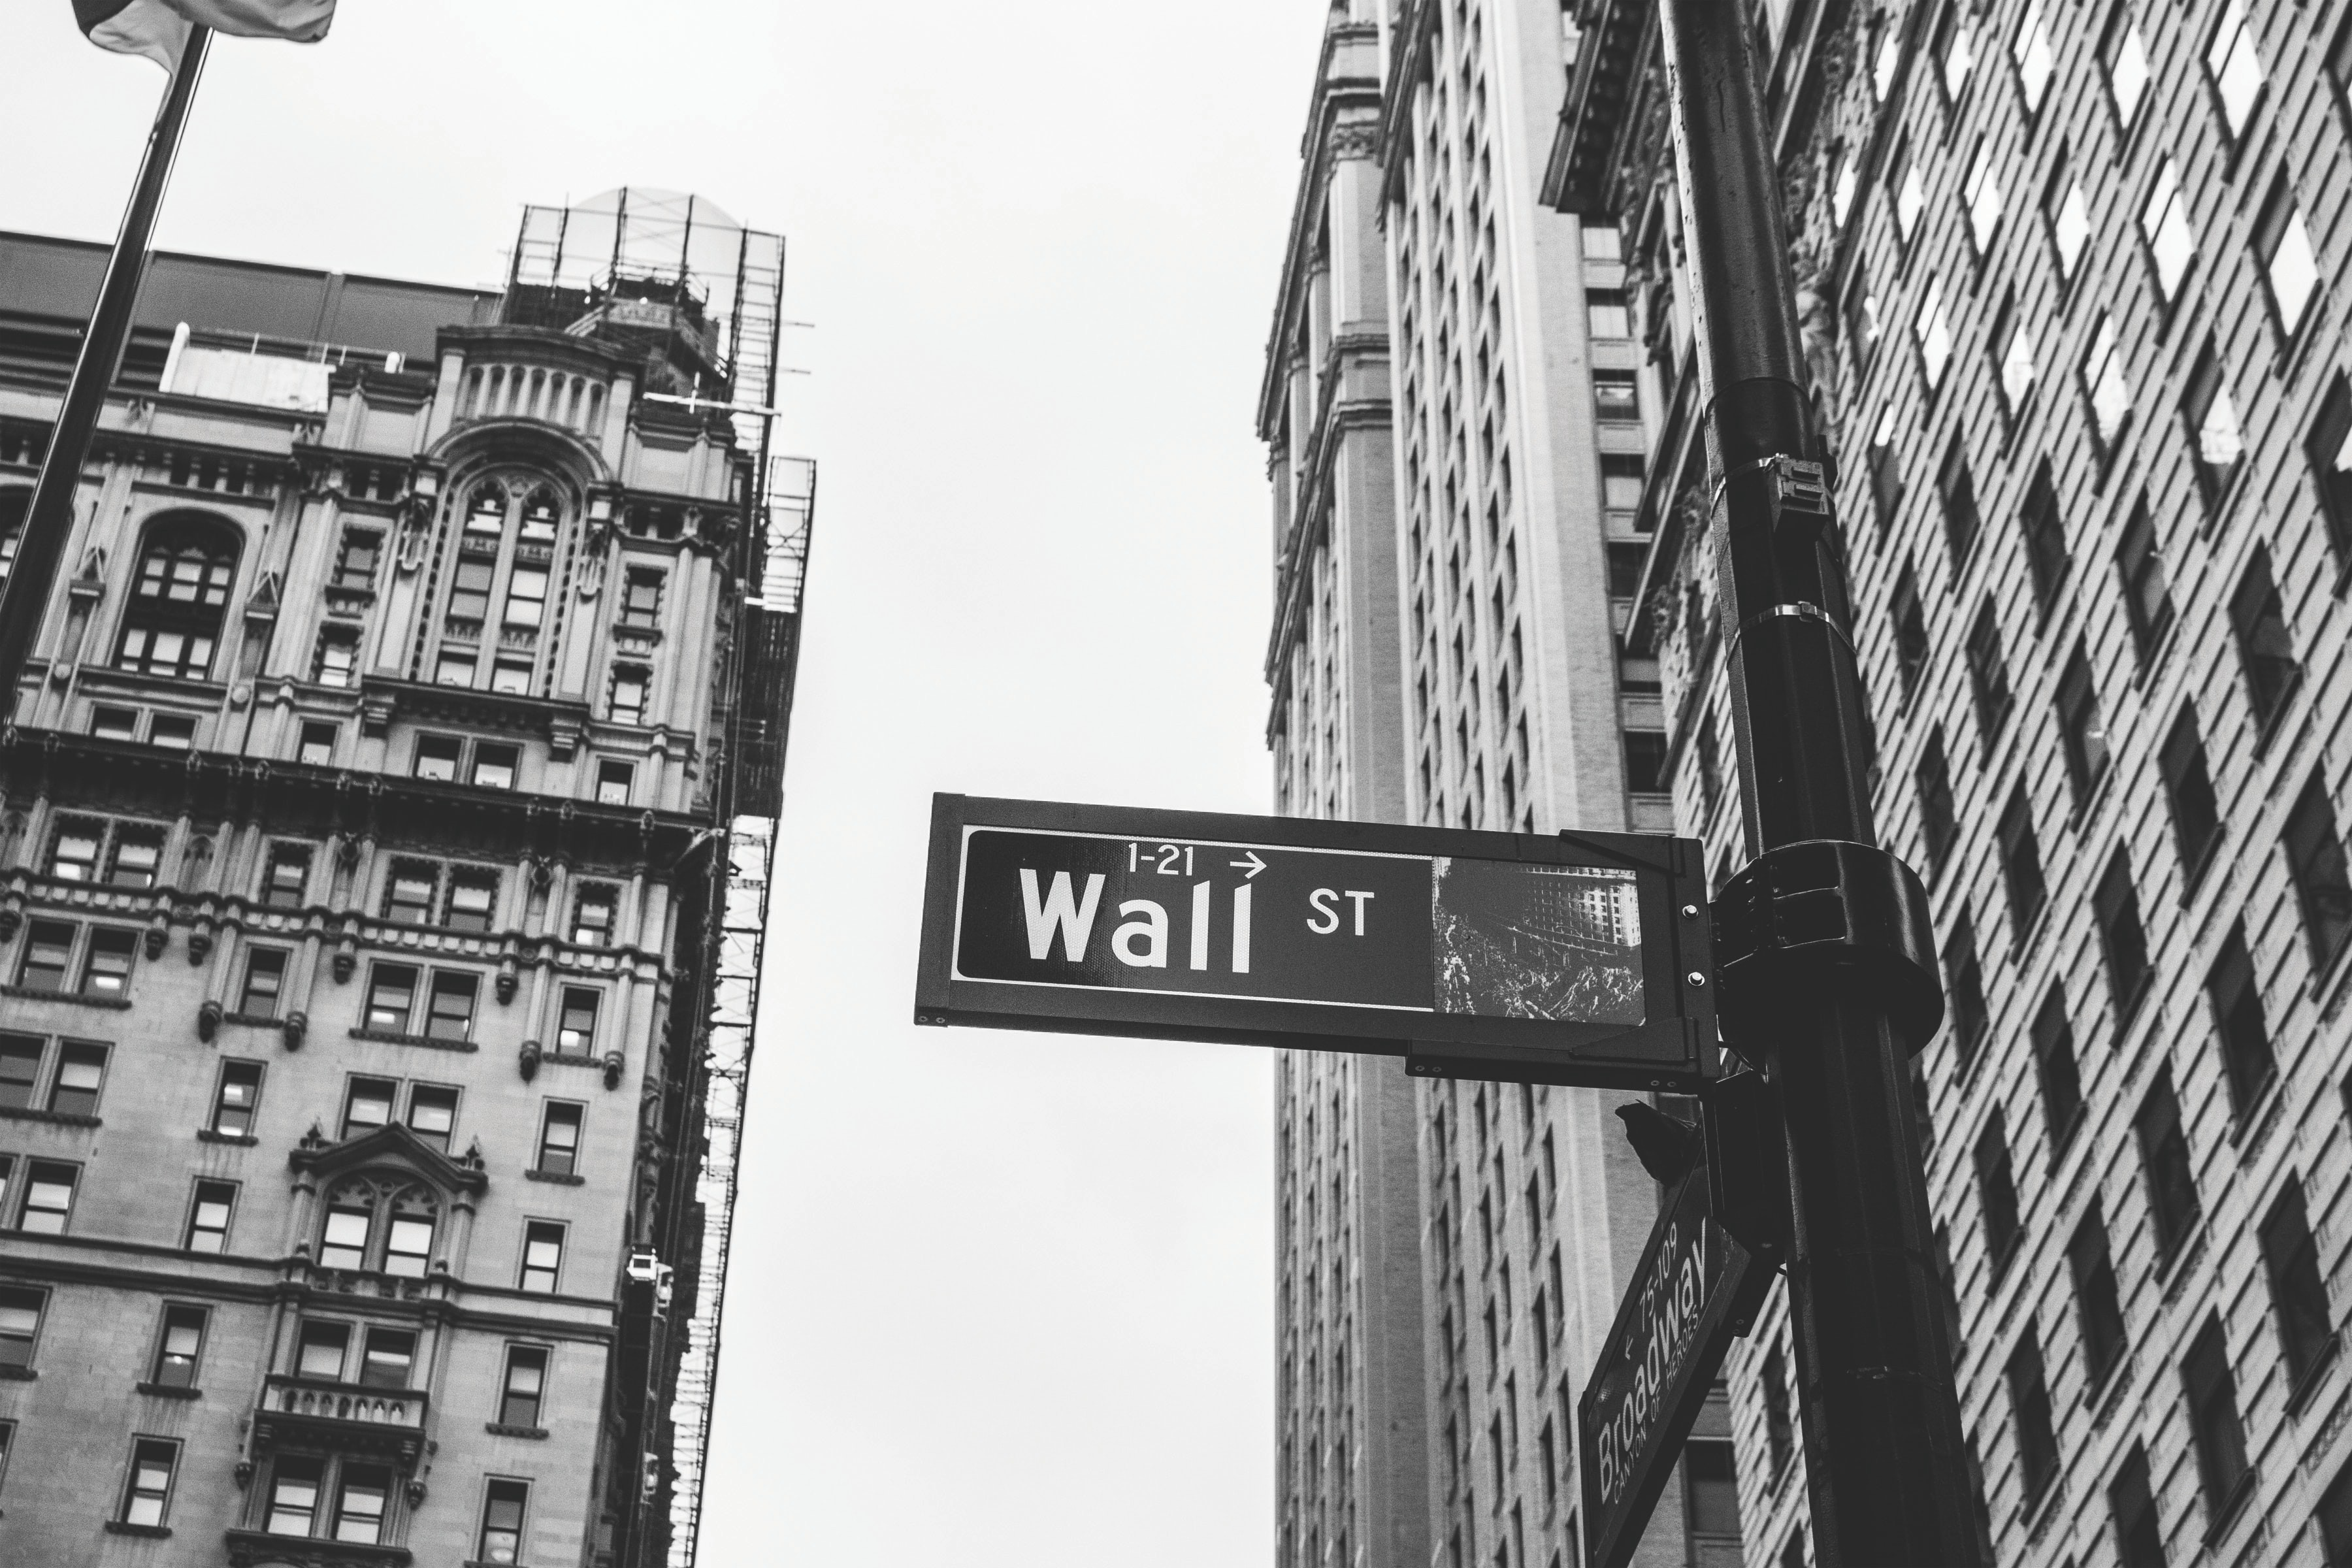 Black and White photo of downtown New York, Wall Street and Broadway street sign.